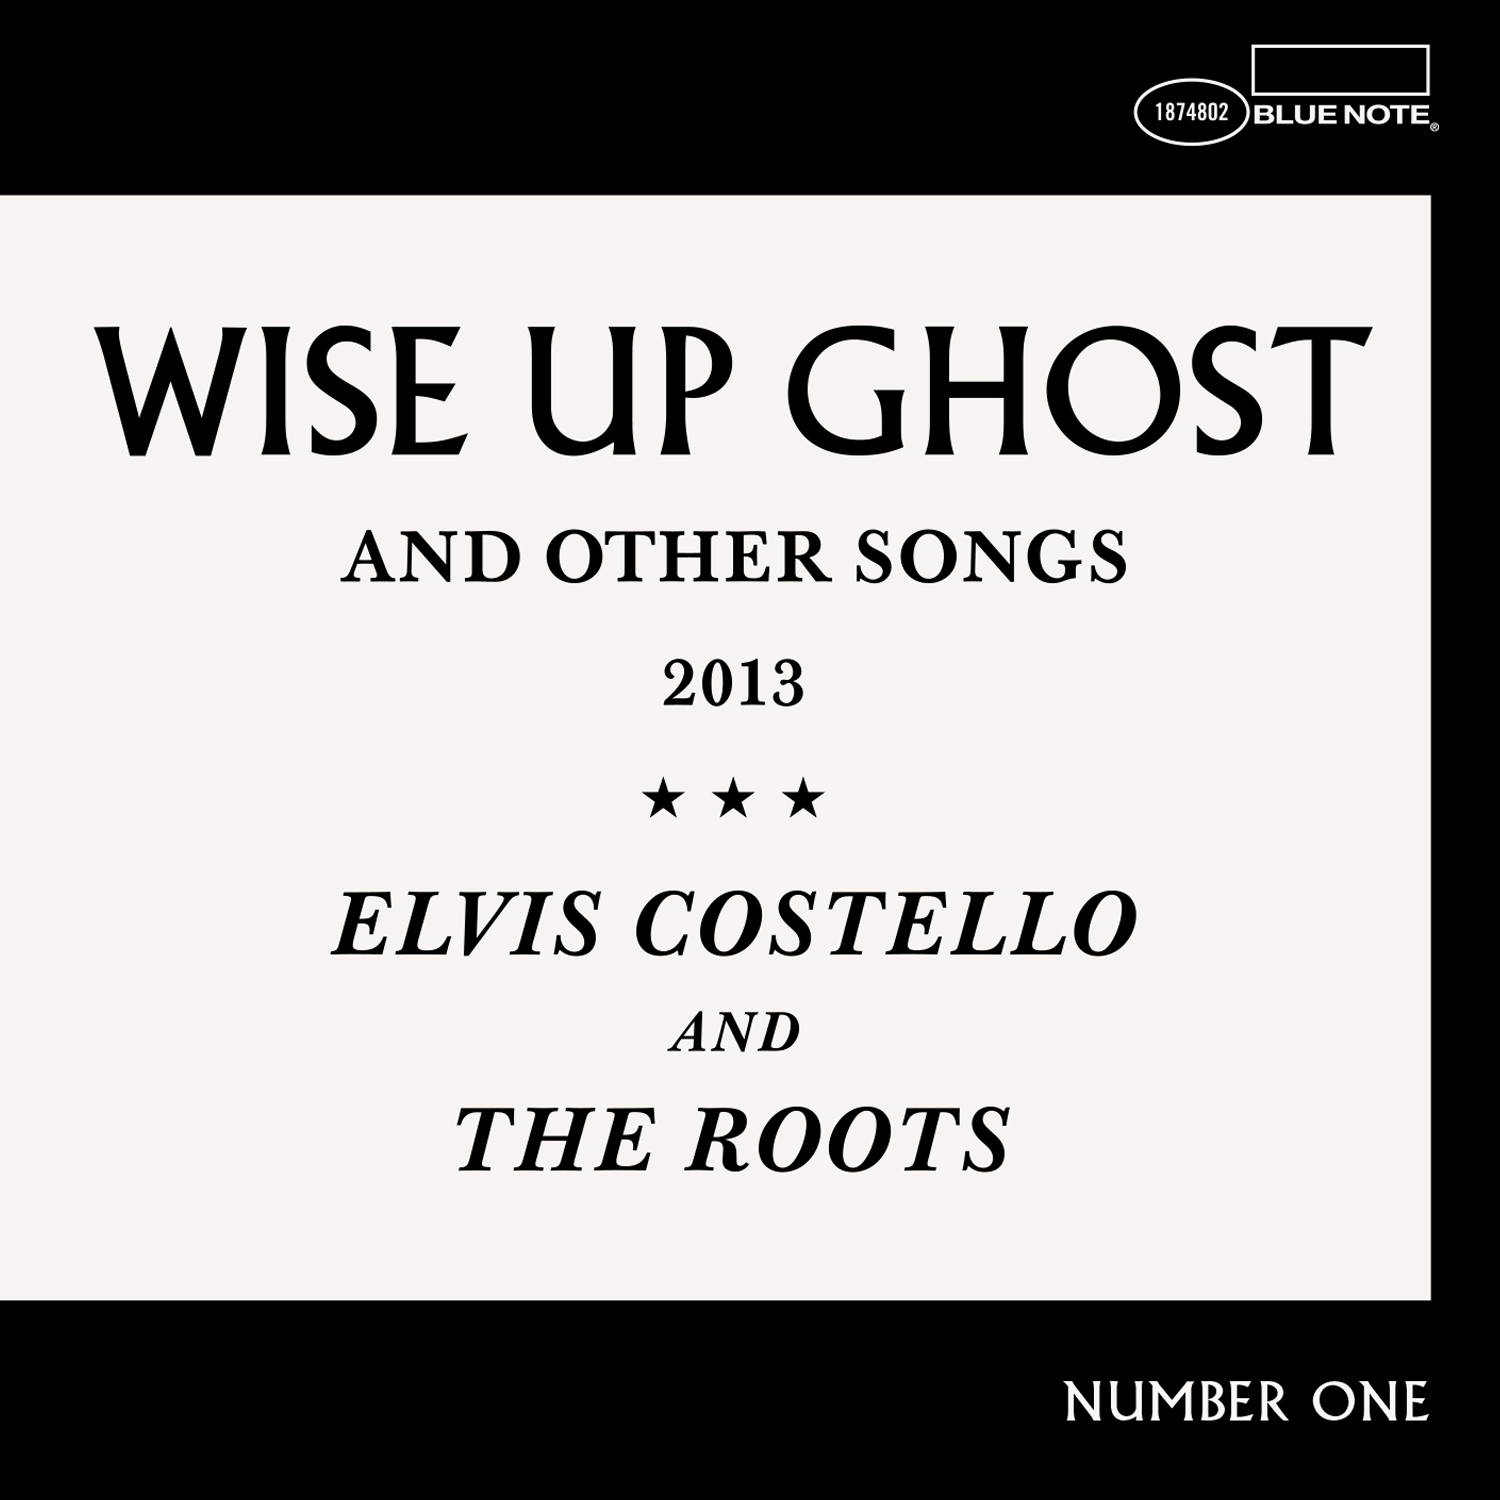 """Elvis Costello And The Roots / """"Sugar Won't Work"""" / Assistant Engineer"""